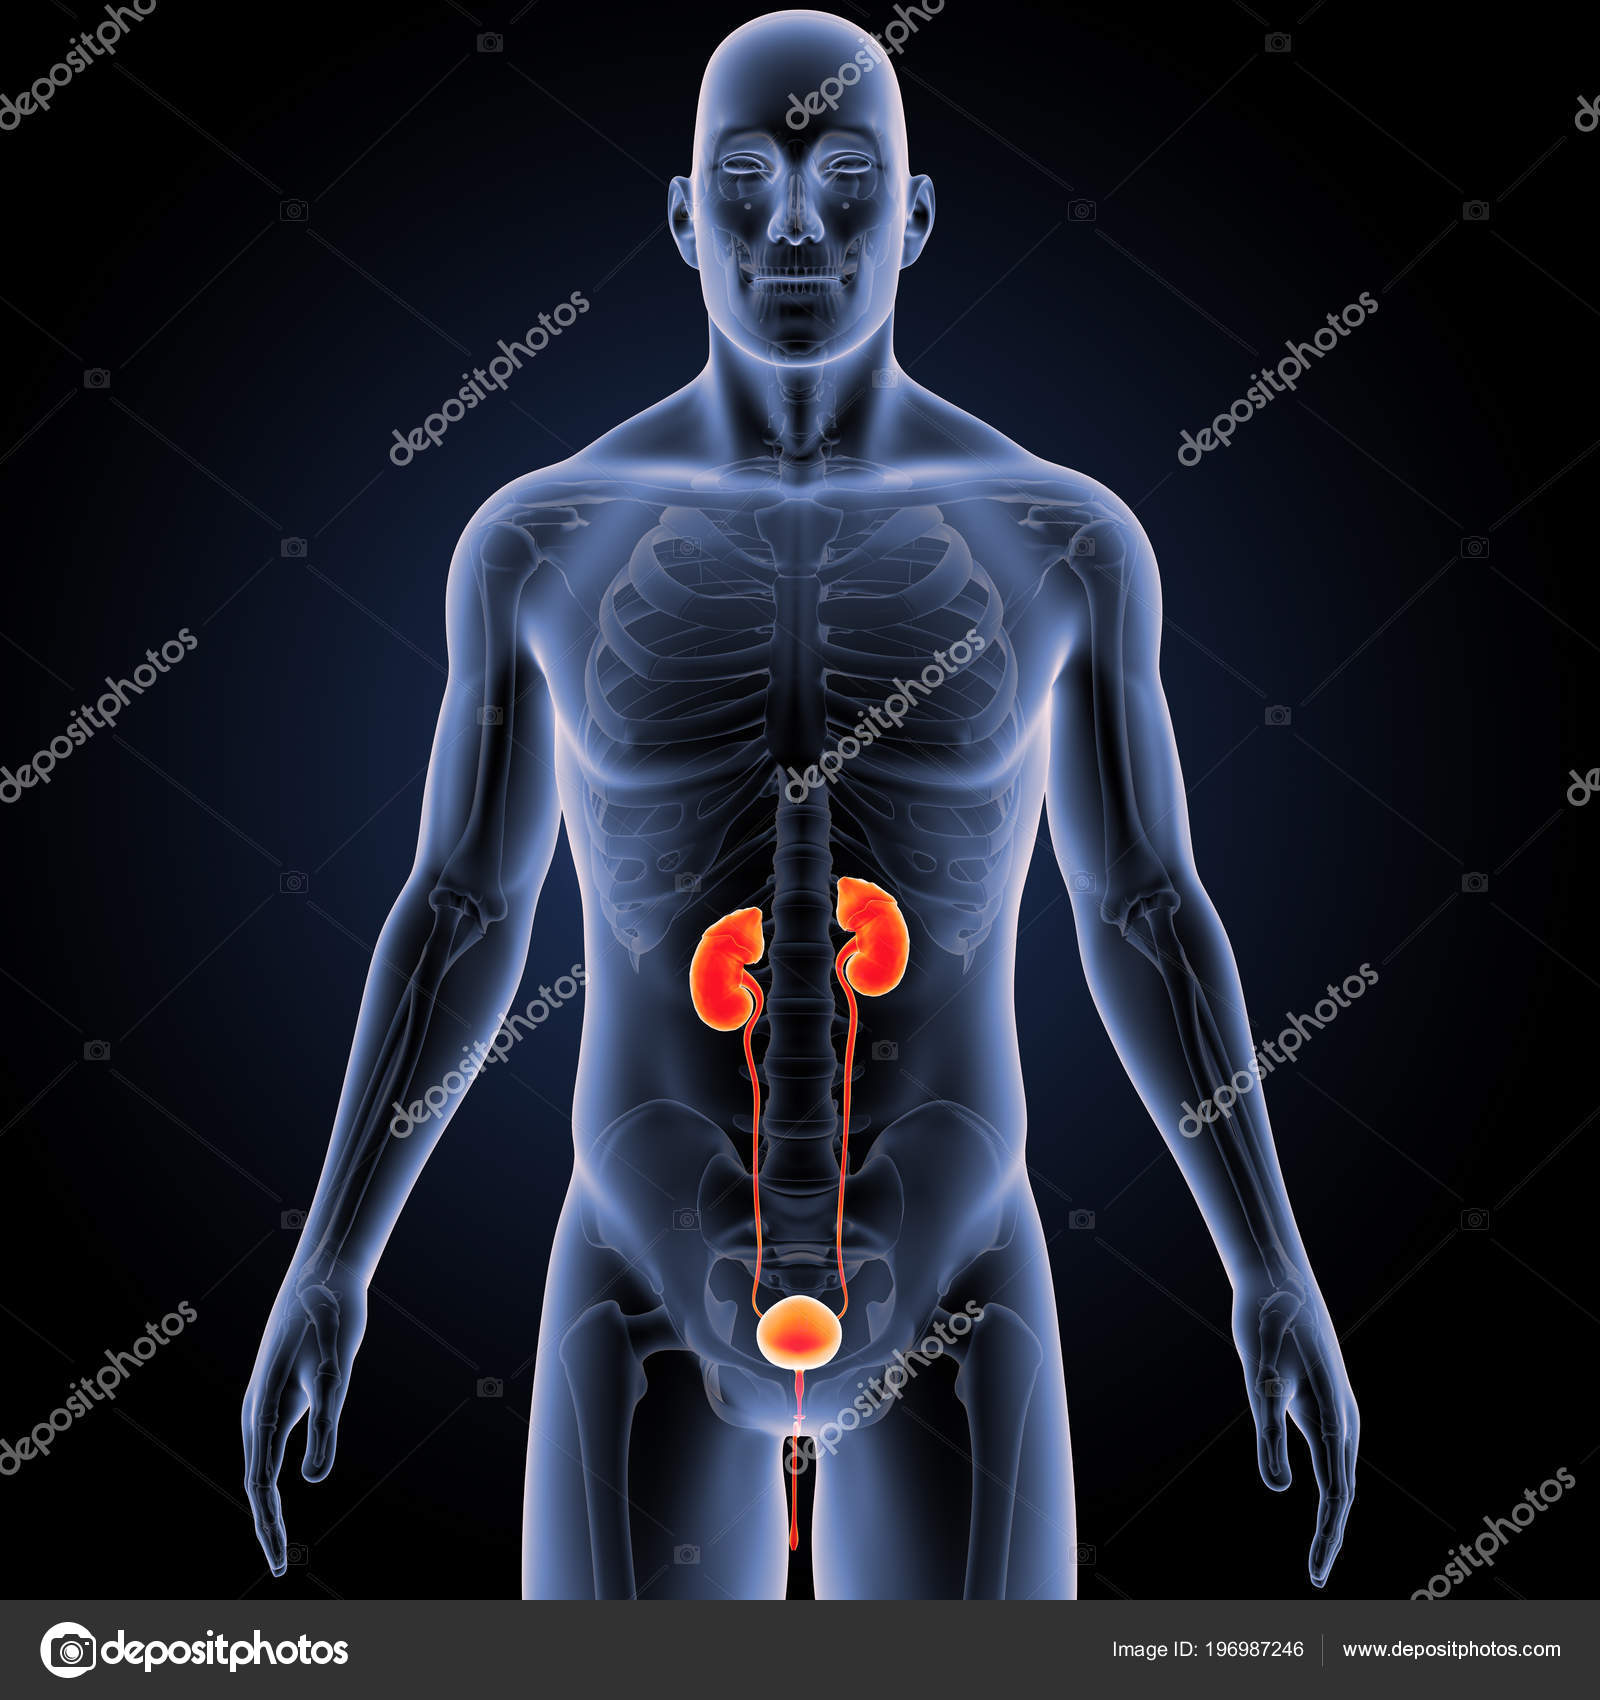 Colorful Medical Illustration Human Male Body Urinary System Stock